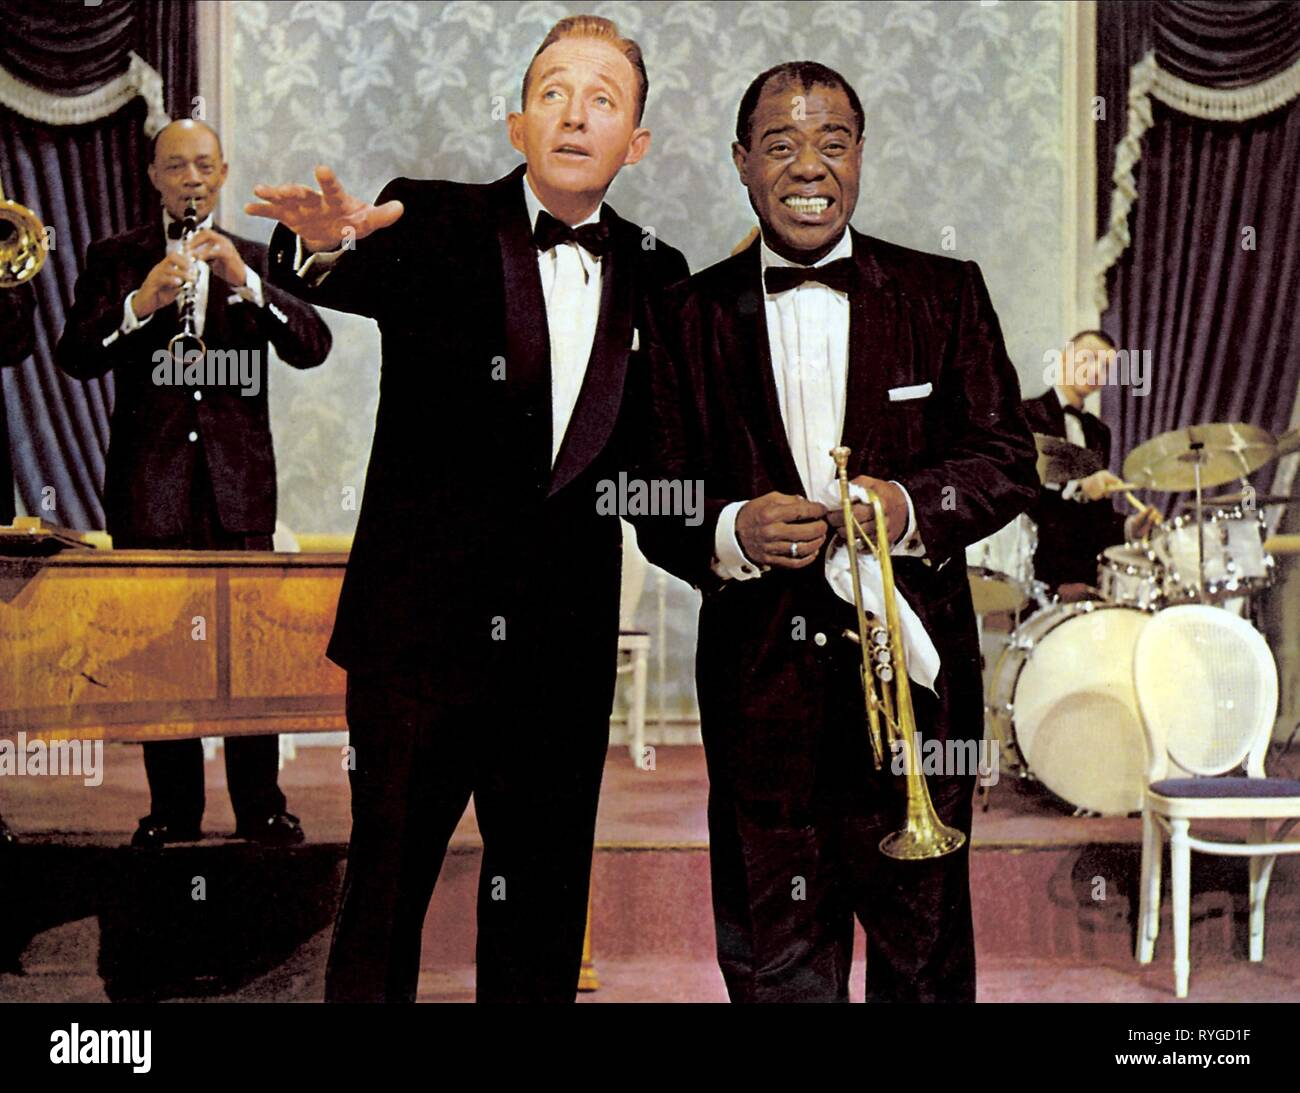 BING CROSBY, LOUIS ARMSTRONG, HIGH SOCIETY, 1956 - Stock Image